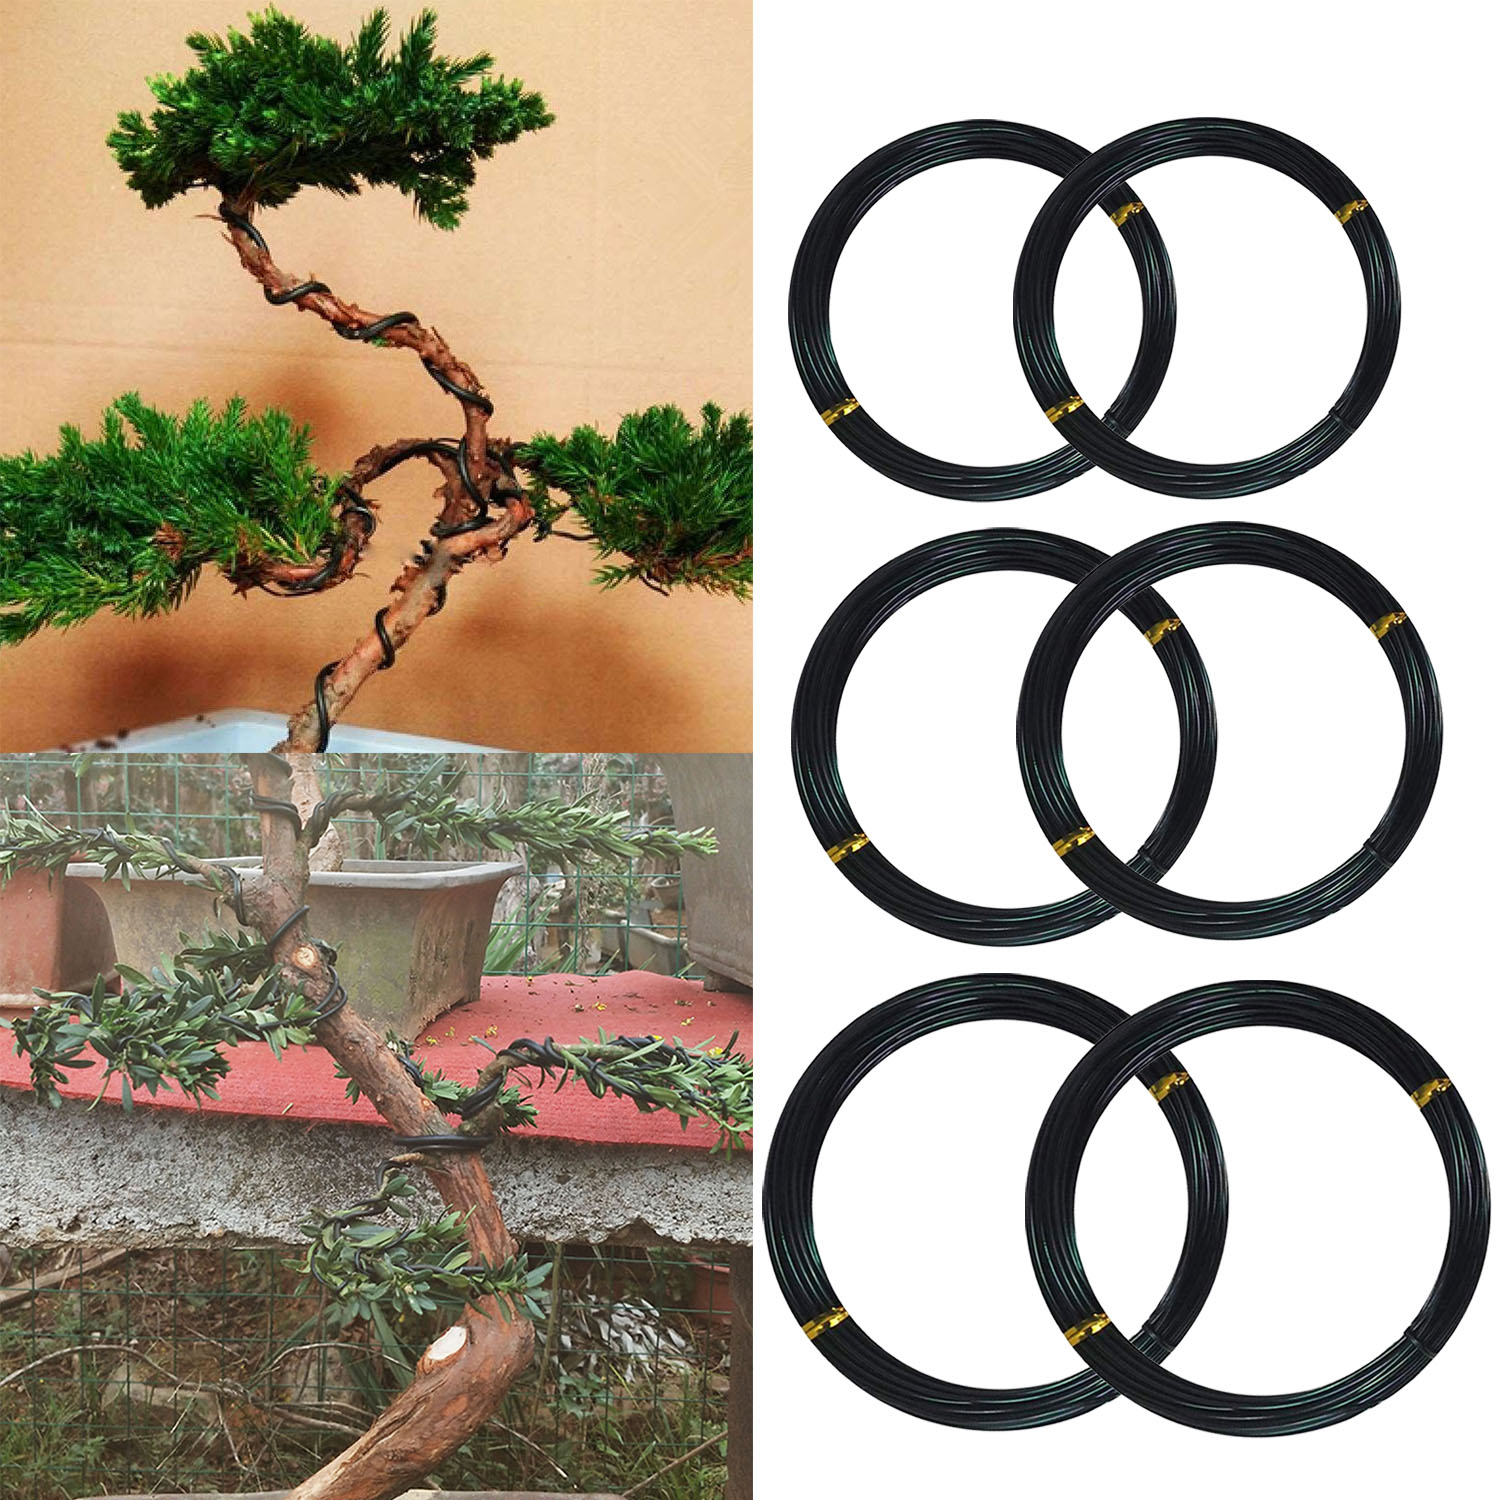 6 Roll 5m Aluminum Tree Training Wires For Garden Plants Bonsai Beginners Trainers Artists 1mm/1.5mm/2mm Black